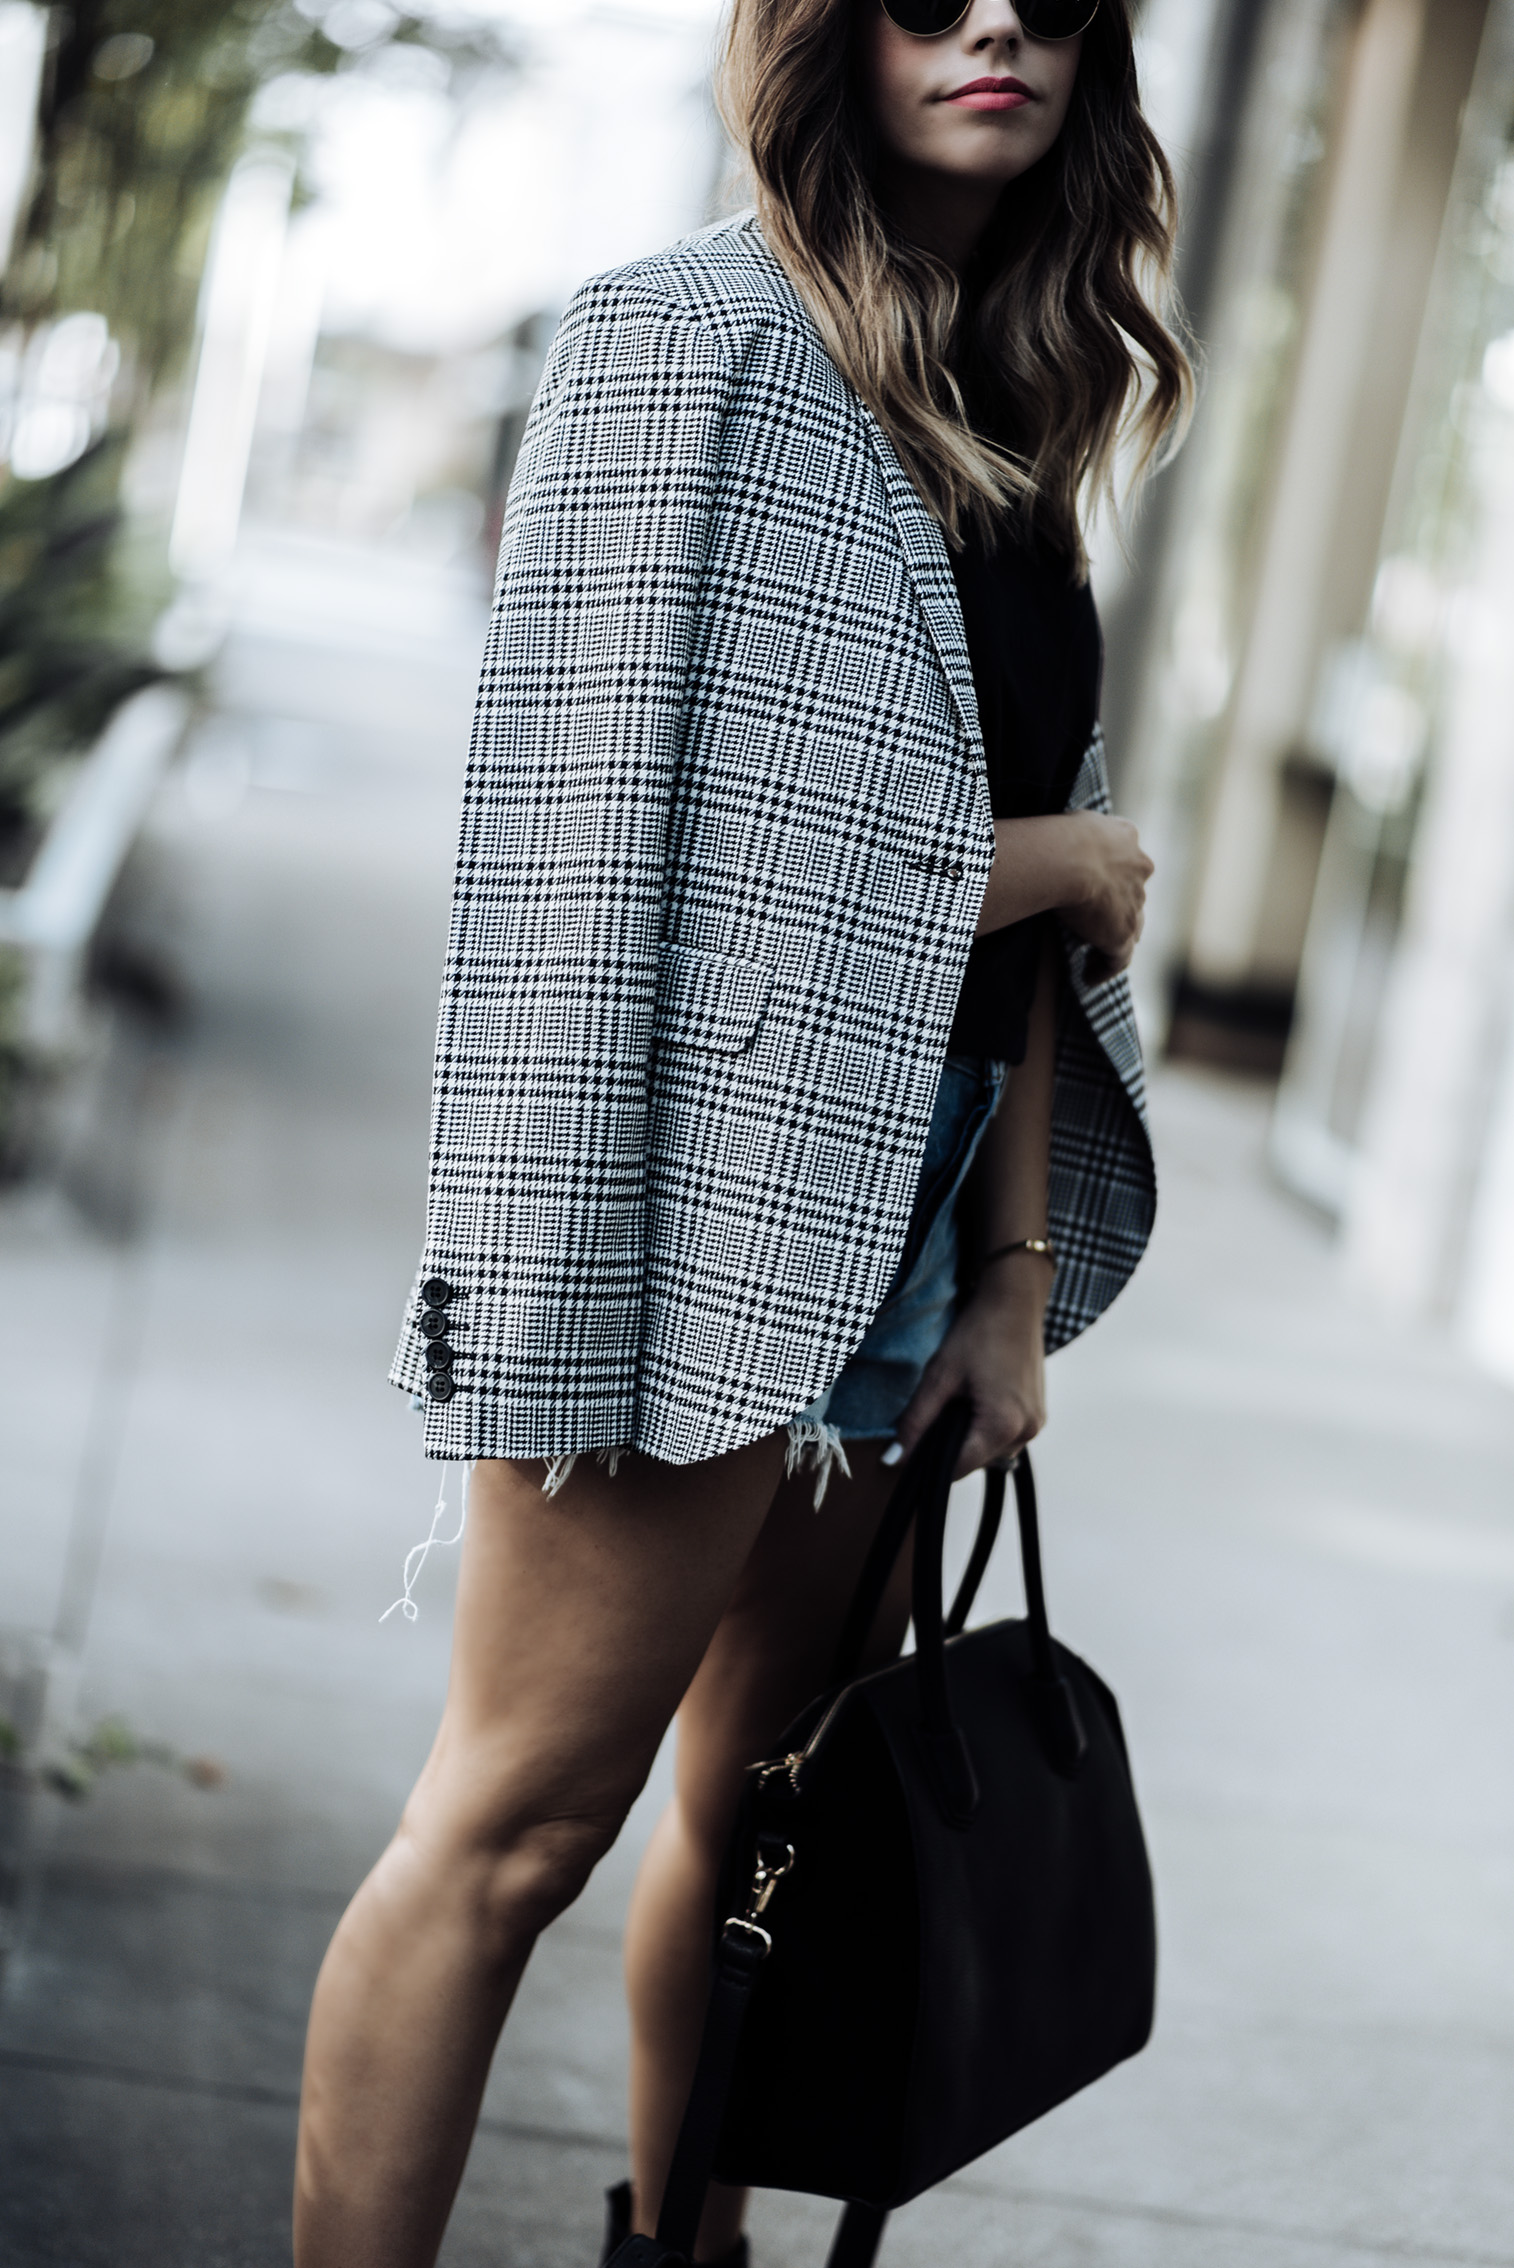 3 check print pieces for under $100 |Tiffany Jais fashion and lifestyle blogger of Flaunt and Center | Houston fashion blogger | Streetstyle blog | Personal style online #streetstyle #ginghamoutfits #checkprint #blazeroutfits